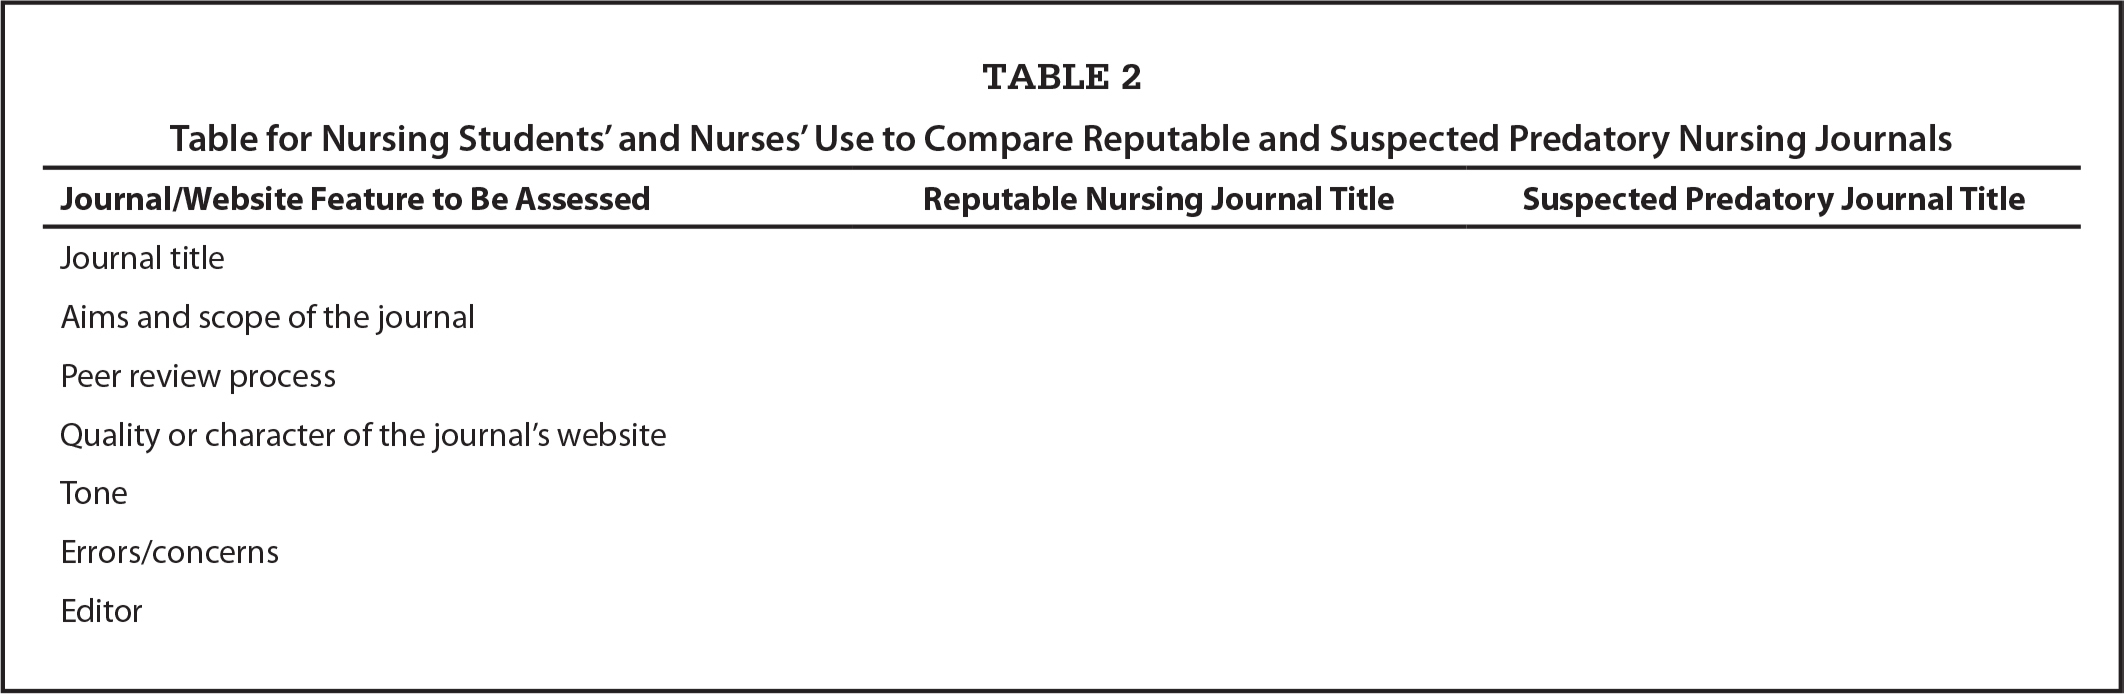 Table for Nursing Students' and Nurses' Use to Compare Reputable and Suspected Predatory Nursing Journals